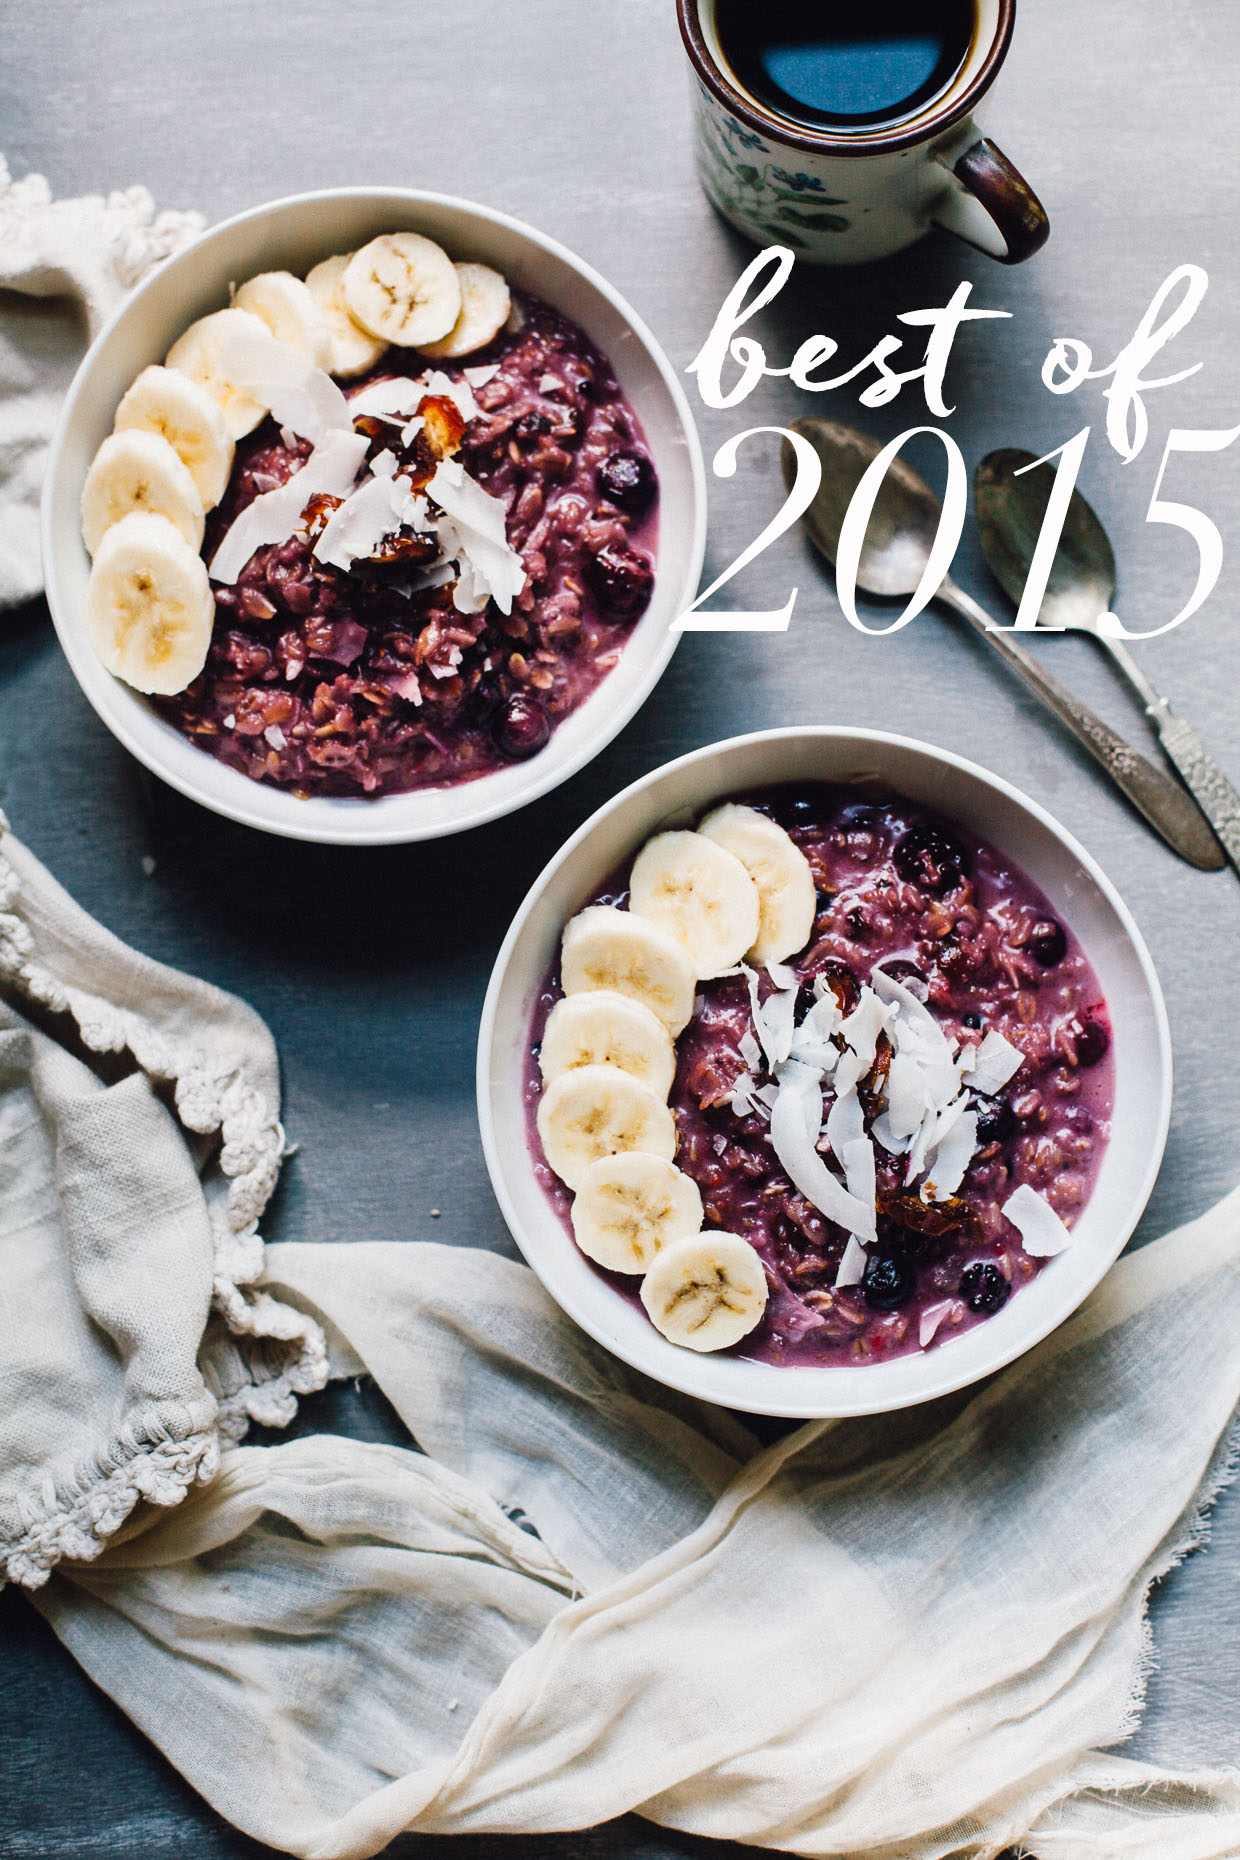 WFFF's Top 10 Recipes of 2015 | willfrolicforfood.com